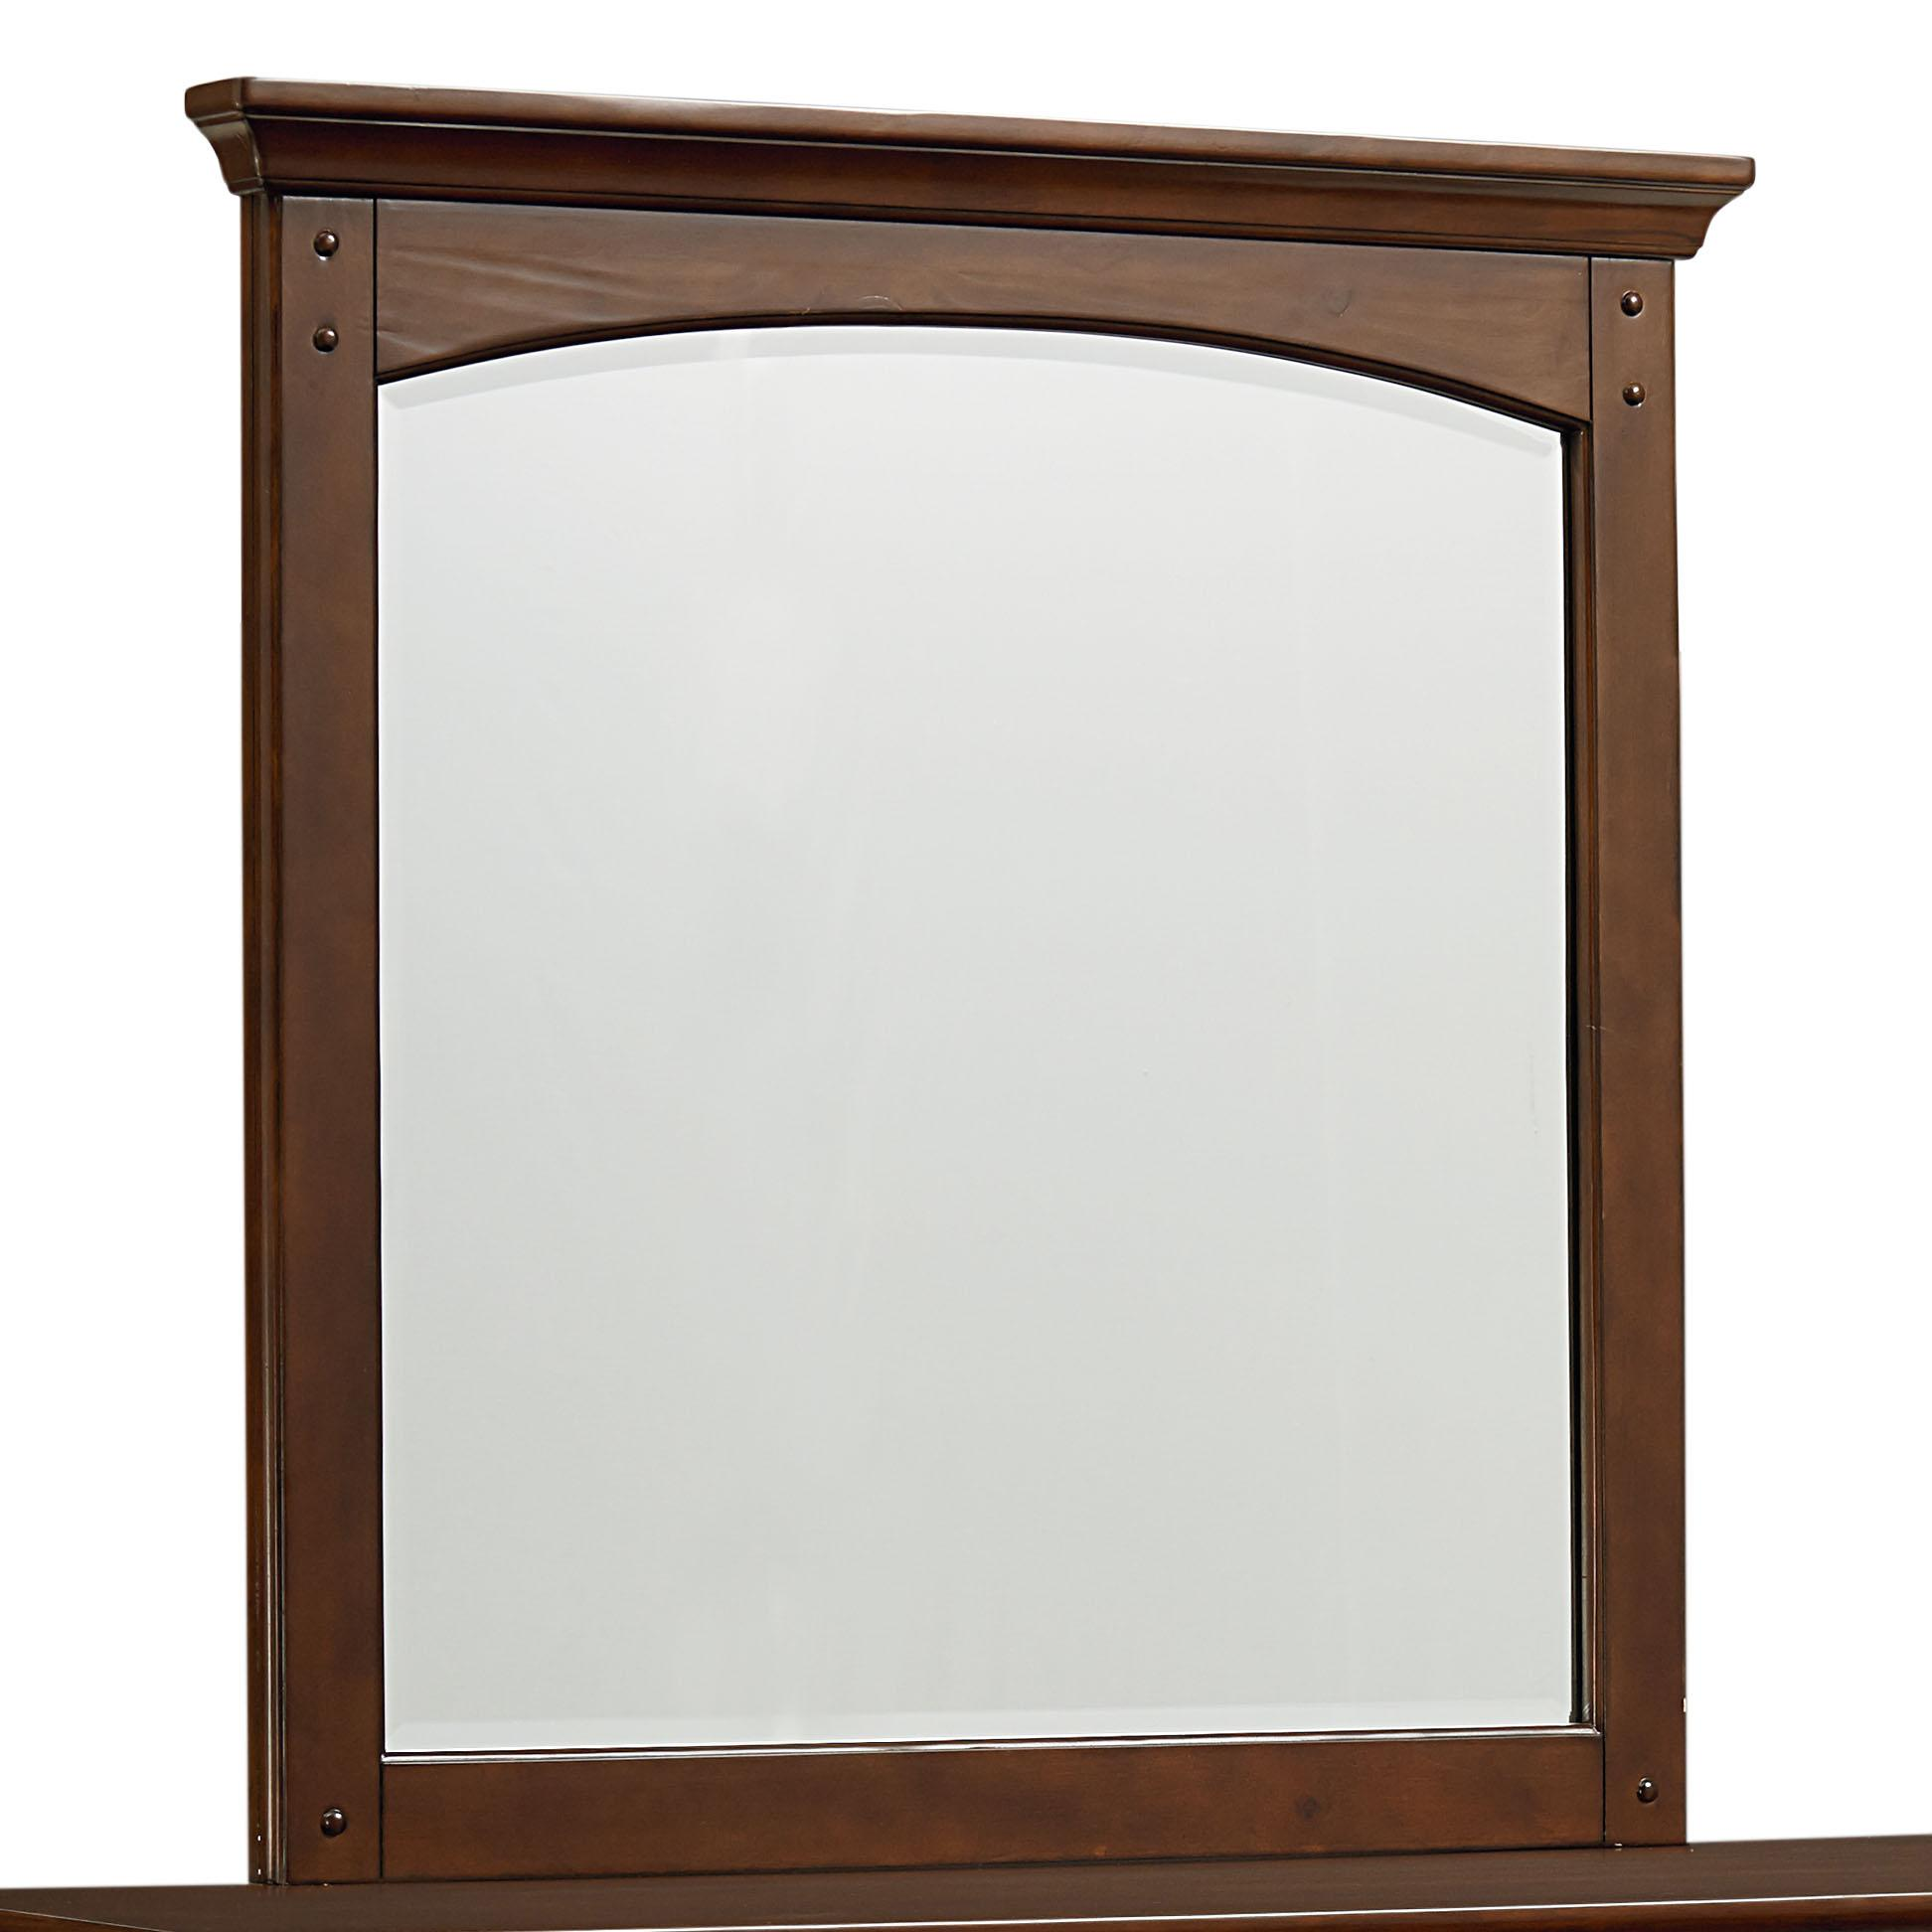 Standard Furniture Cooperstown Youth Mirror - Item Number: 93818